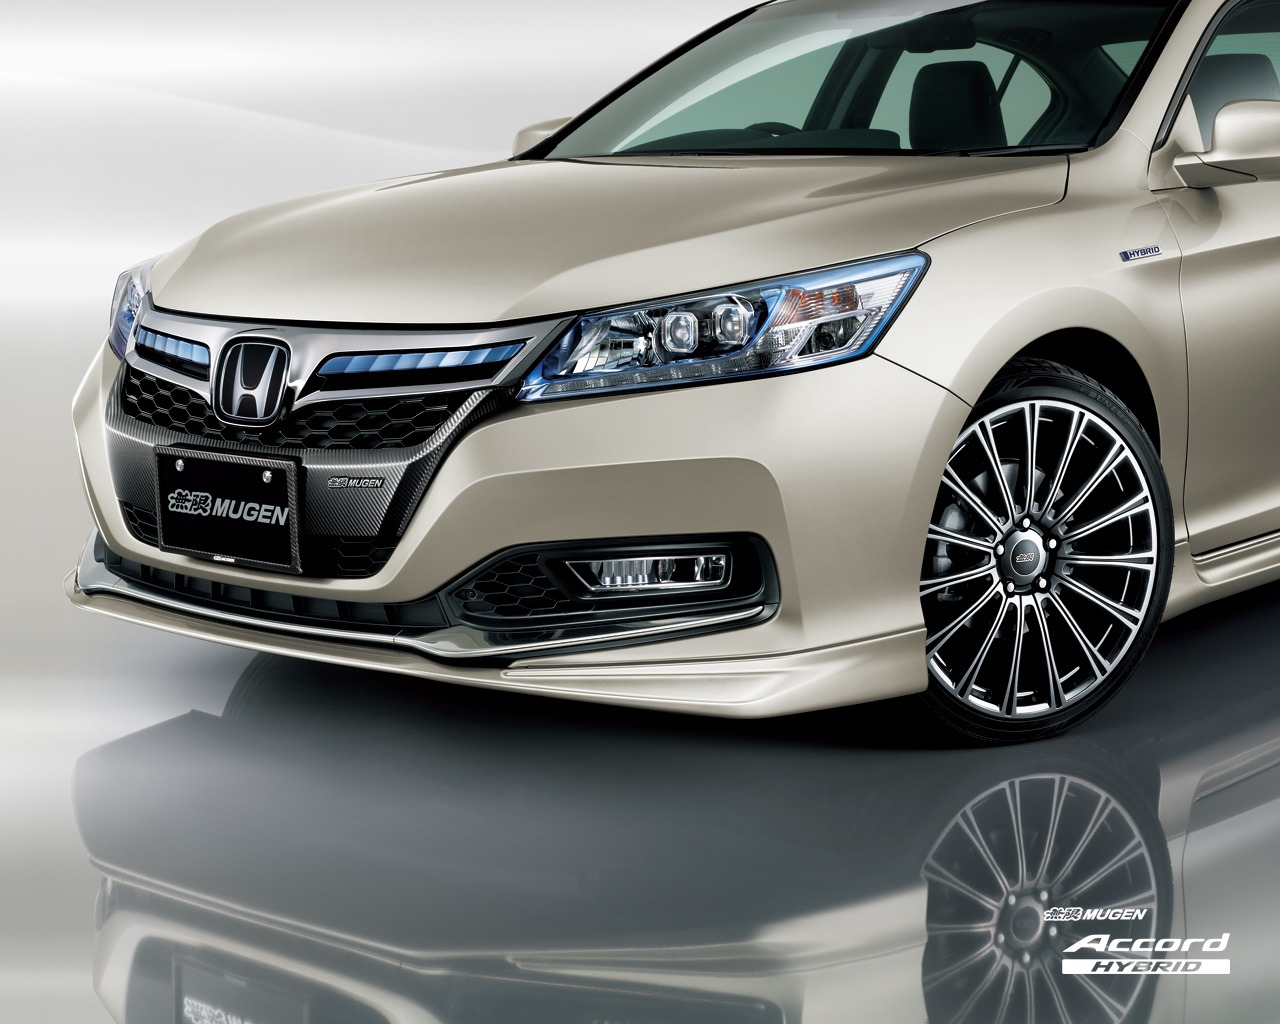 Honda Accord Hybrid By Mugen Bodykit Sports Suspension